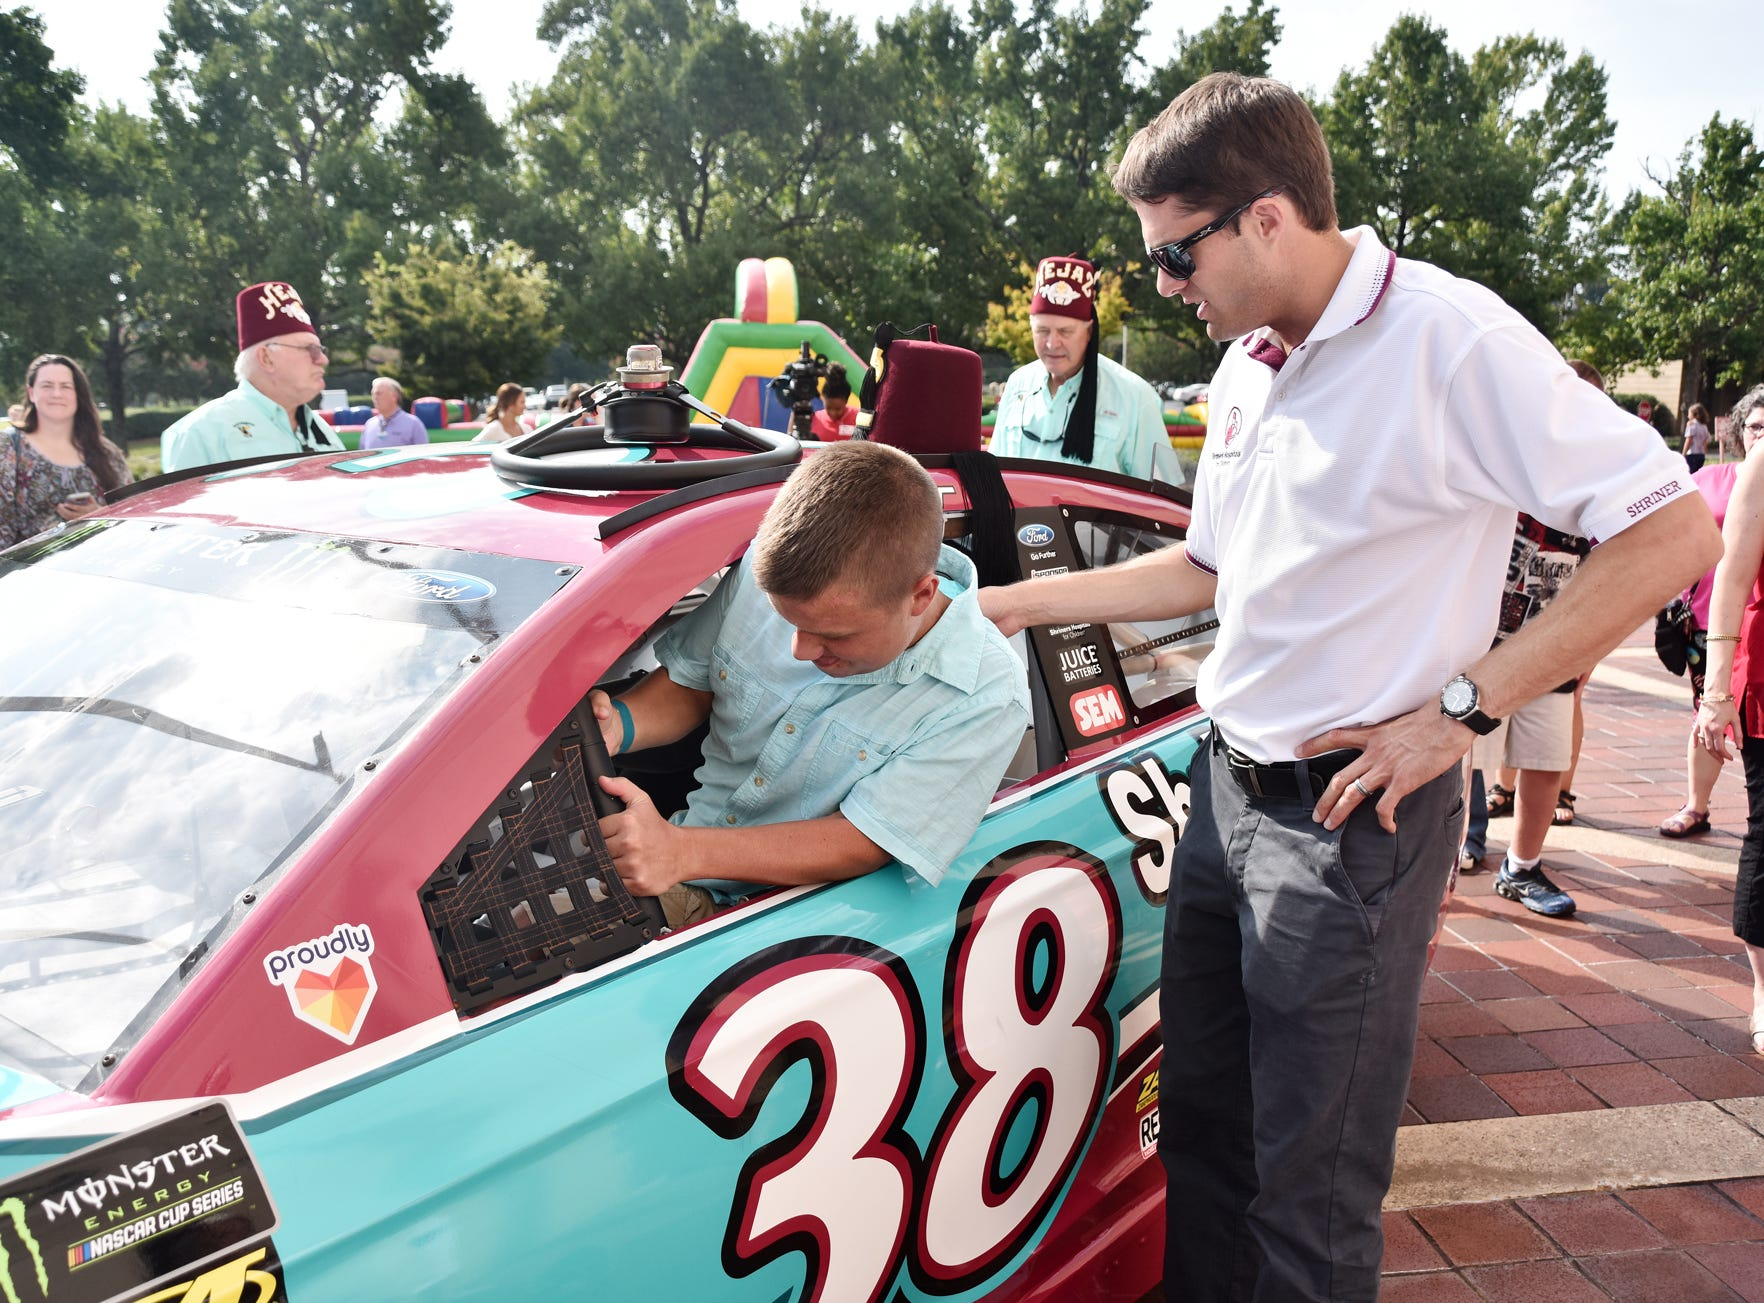 NASCAR driver David Ragan helps Landen Vaughan, 15, into a replica car at the Shriners Hospital for Children in Greenville on August 15, 2018.